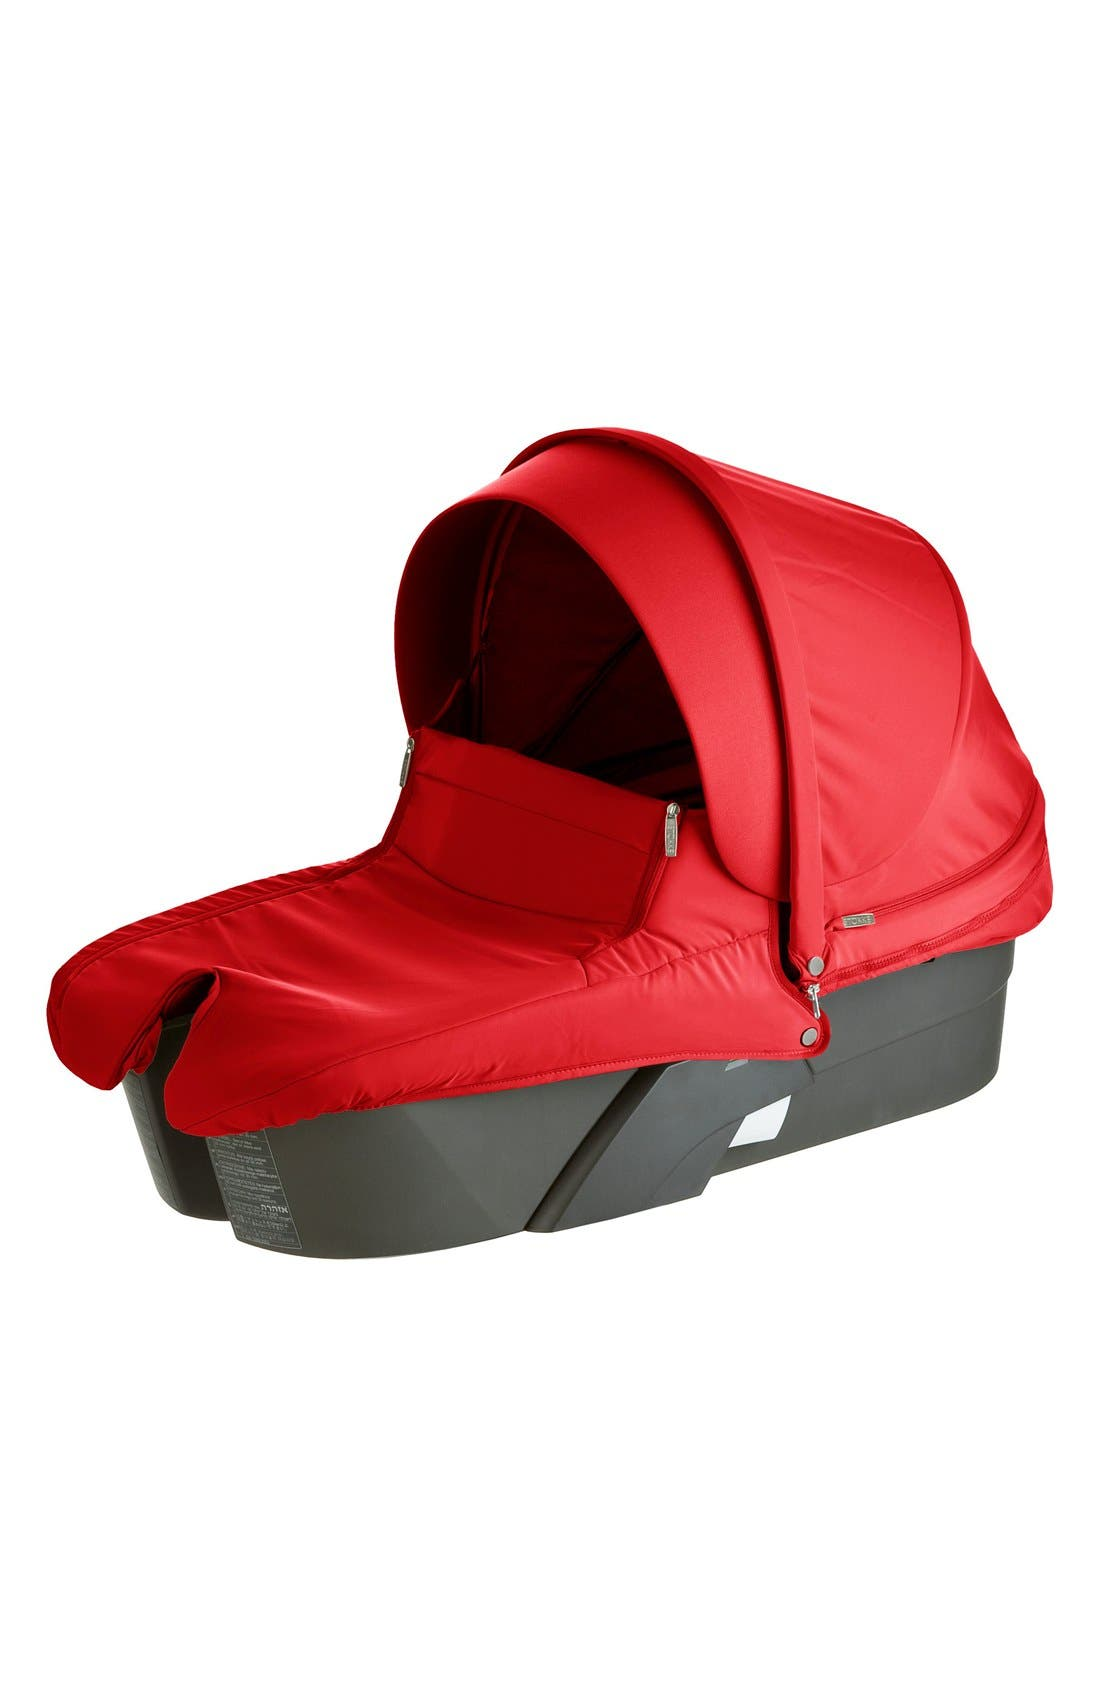 'Xplory<sup>®</sup>' Stroller Carry Cot,                         Main,                         color, Red